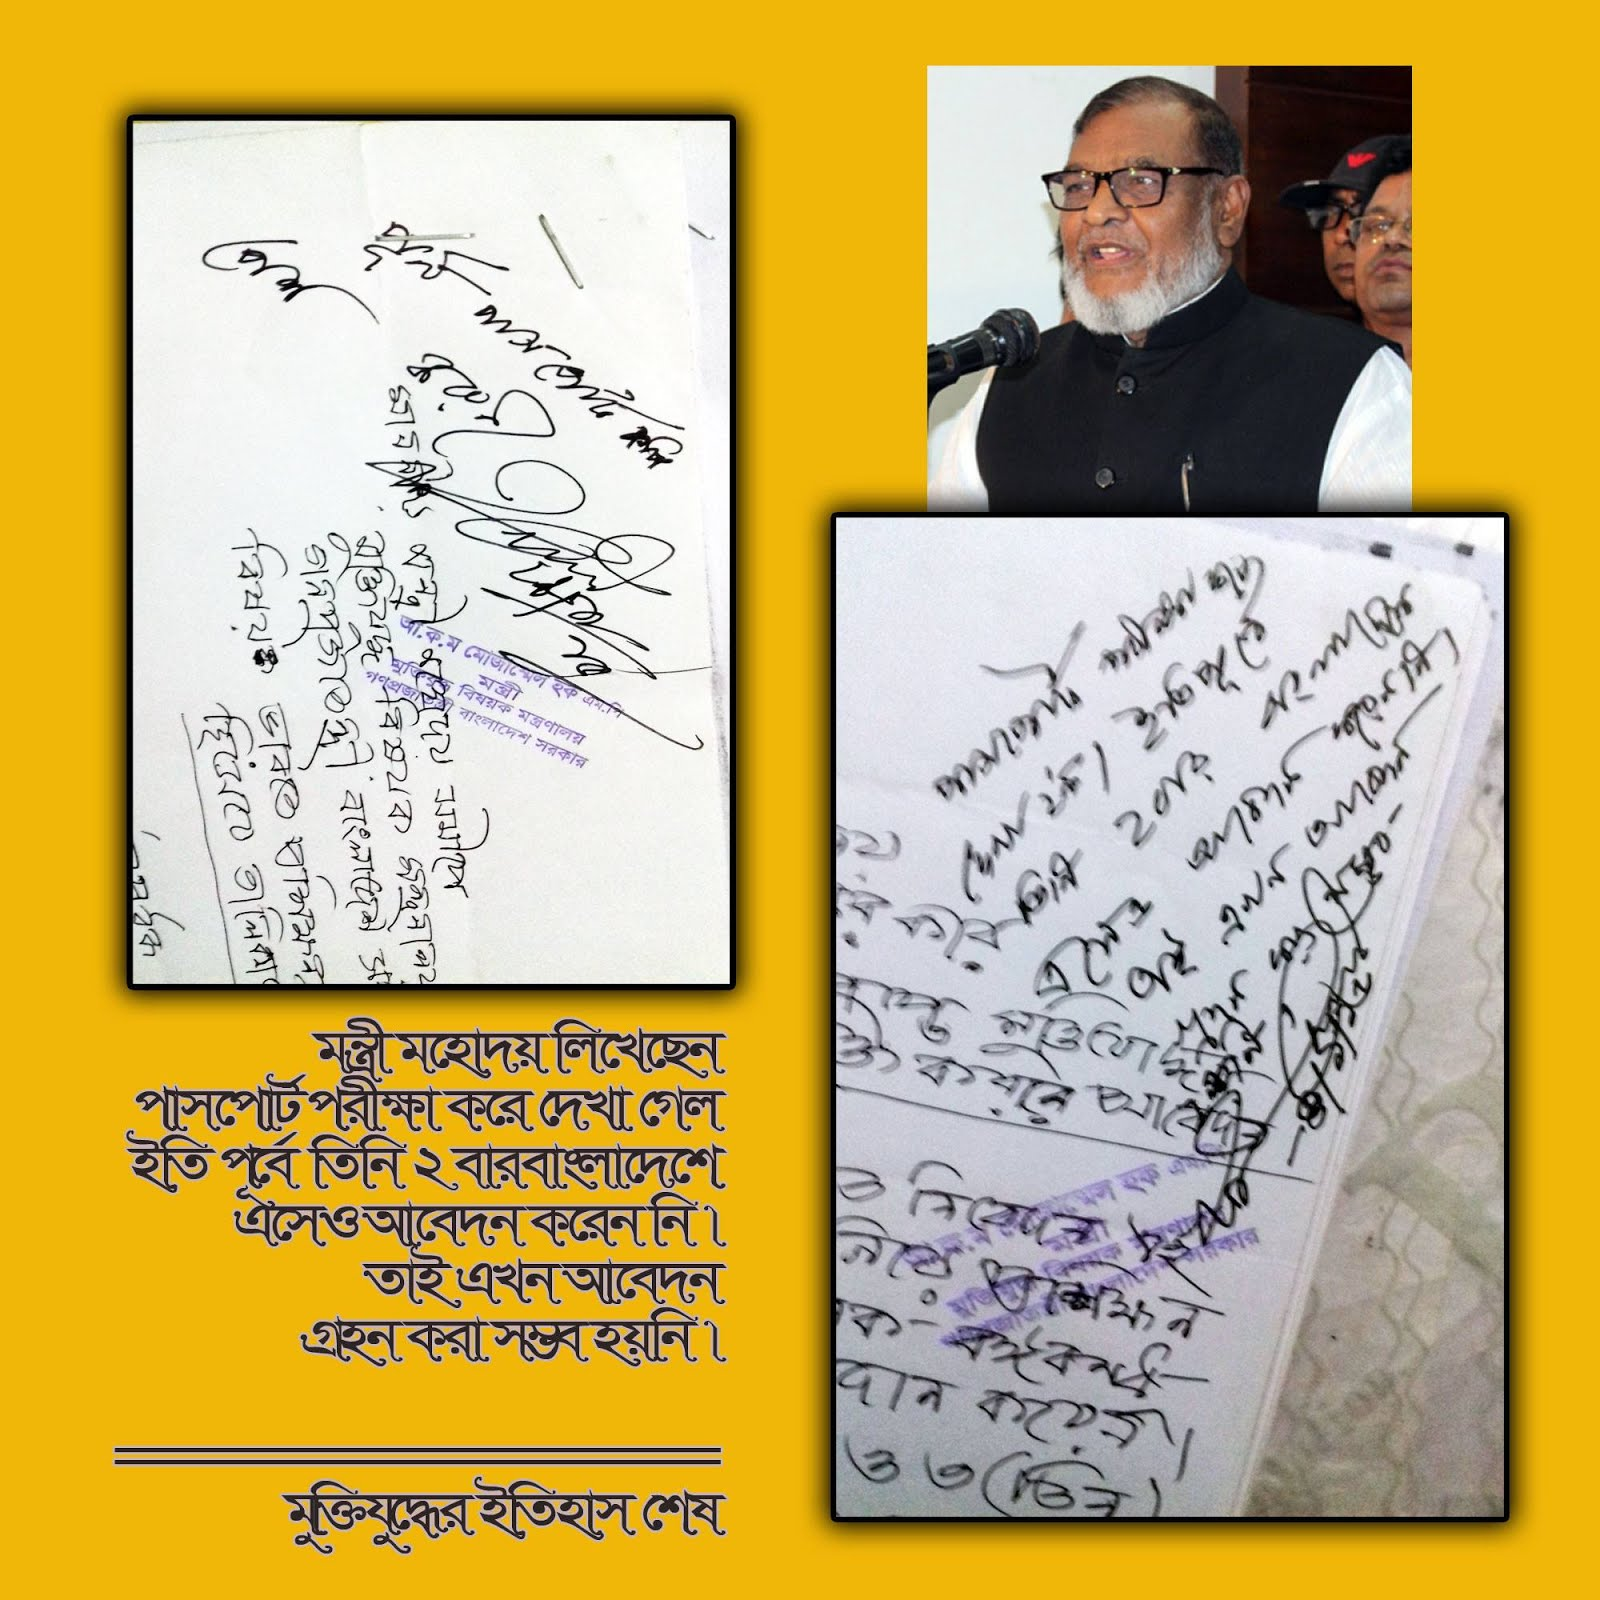 Awami League has rejected my app